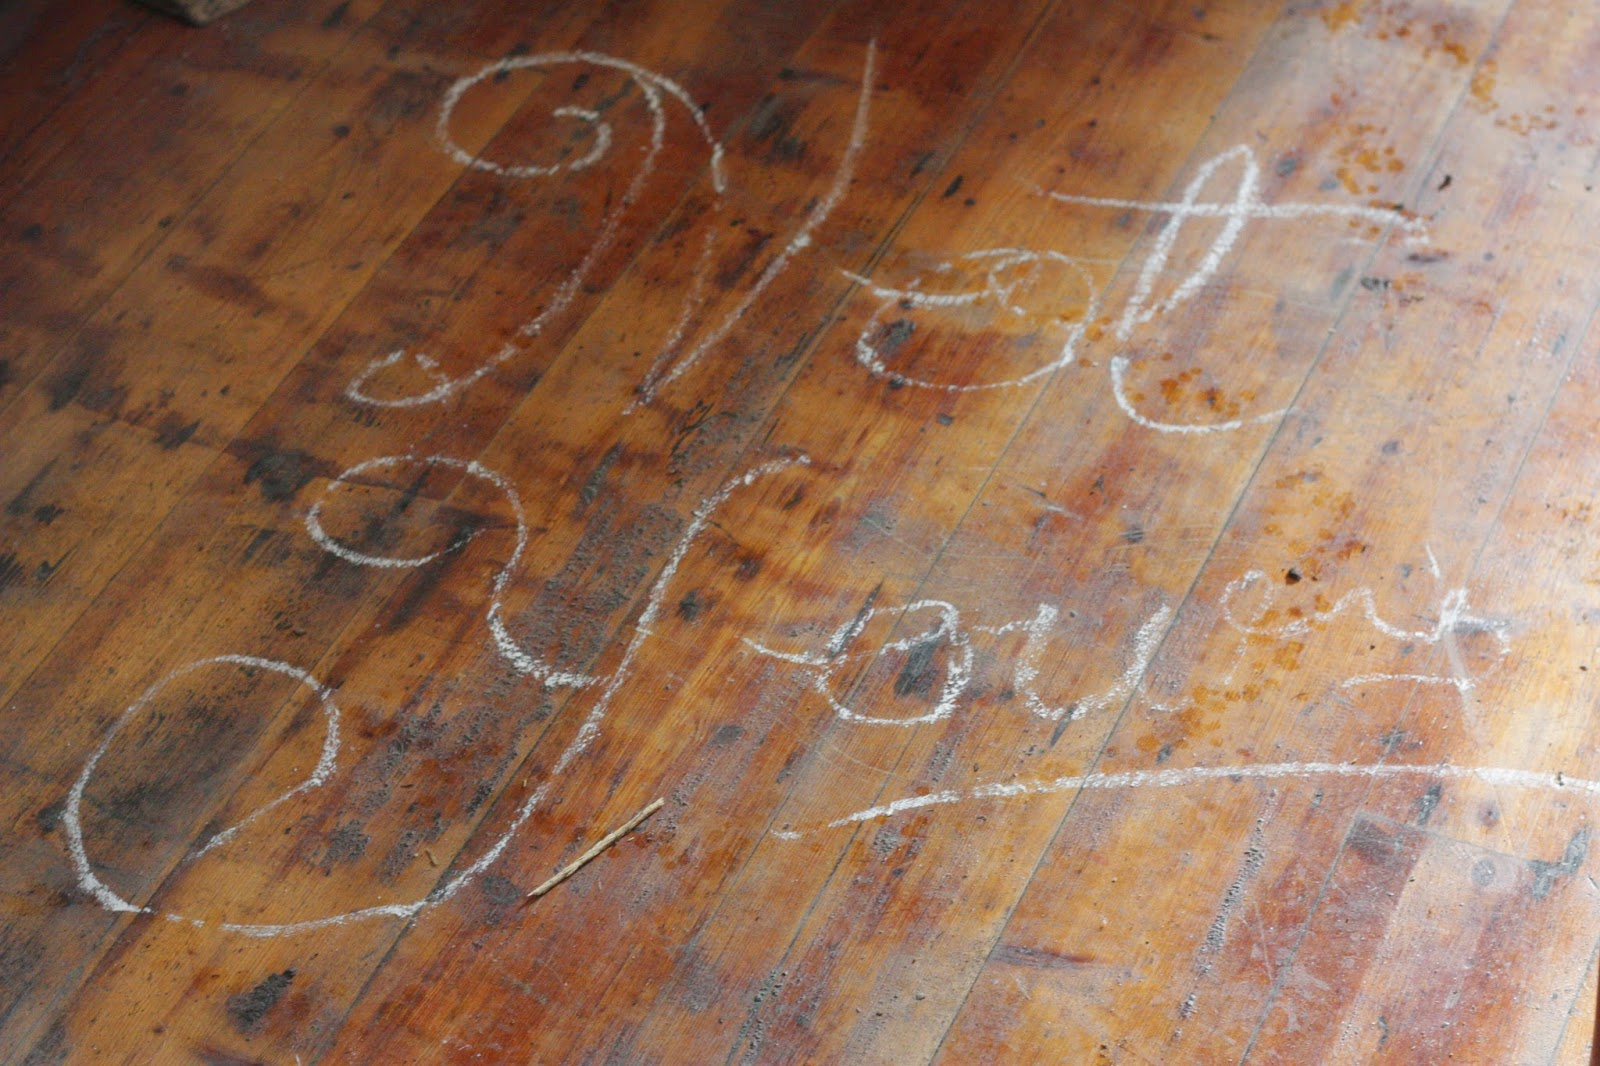 'not yours' scrawled on the floor in chalk